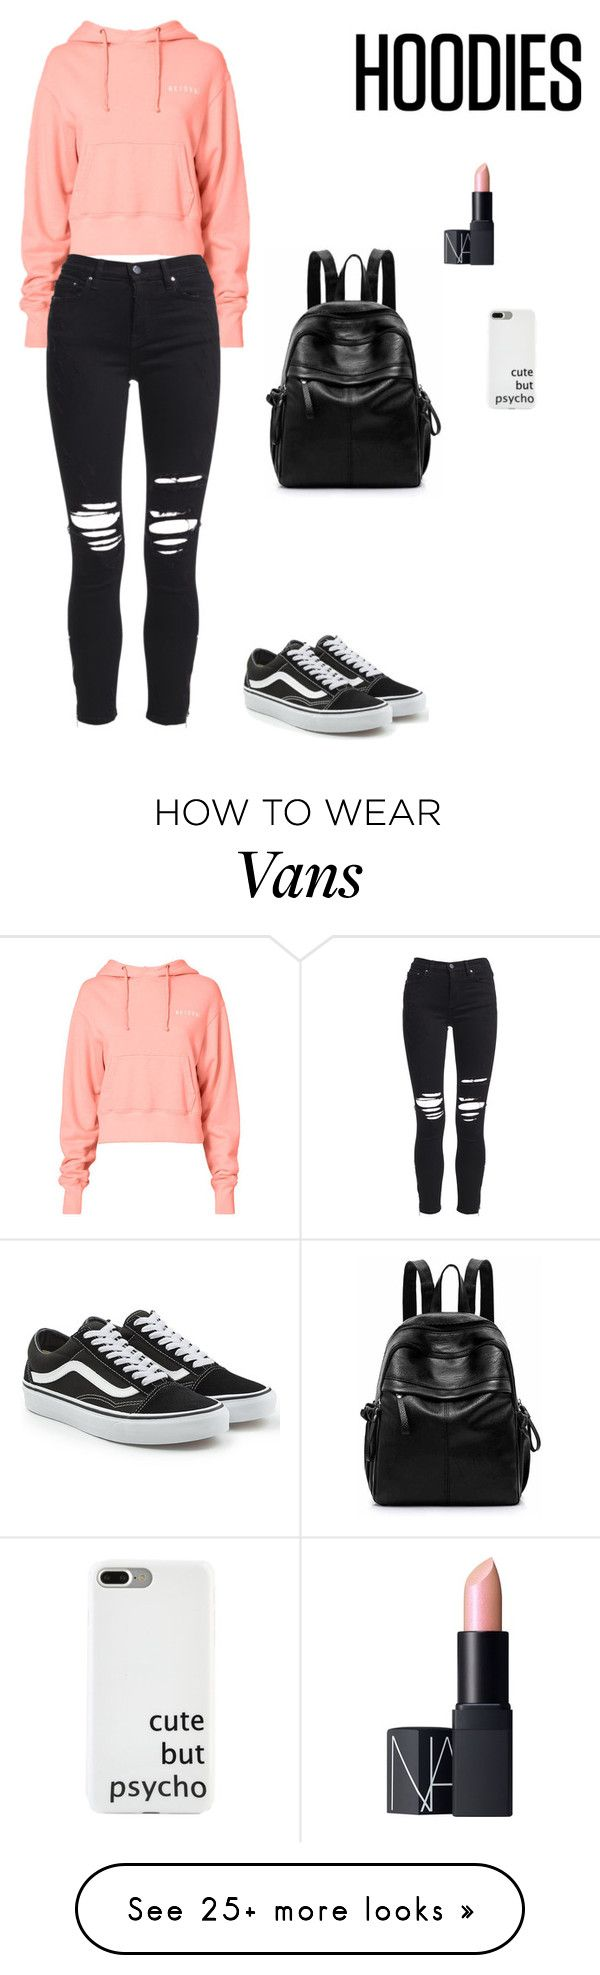 """Untitled #469"" by jesica-d-psc on Polyvore featuring RE/DONE, AMIRI, Vans, NARS Cosmetics and Hoodies"